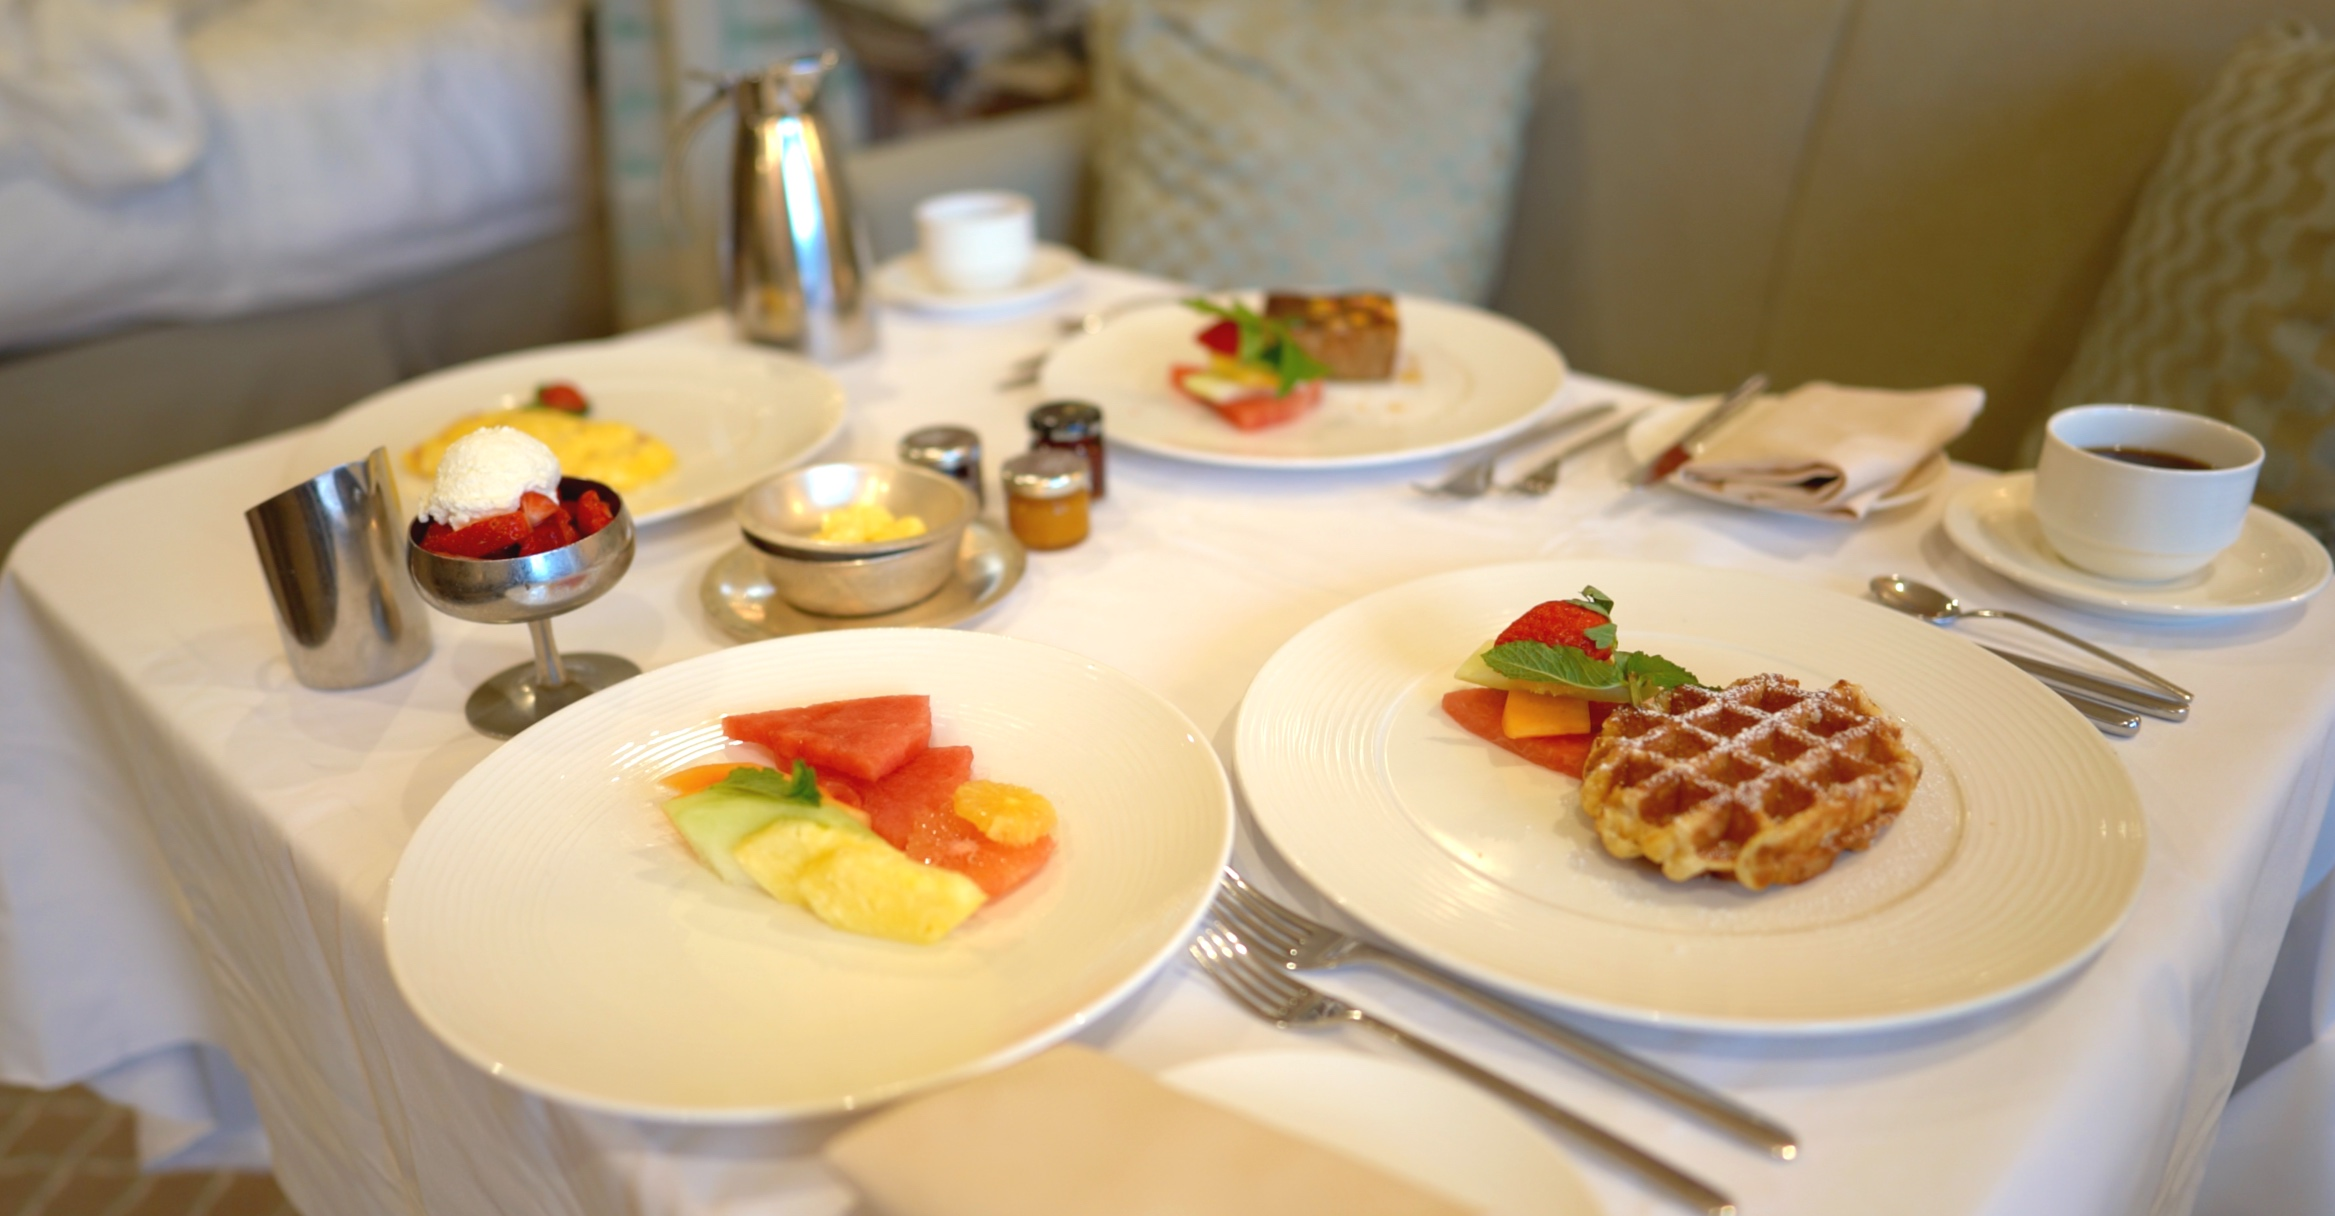 Our delicious in-suite breakfast.